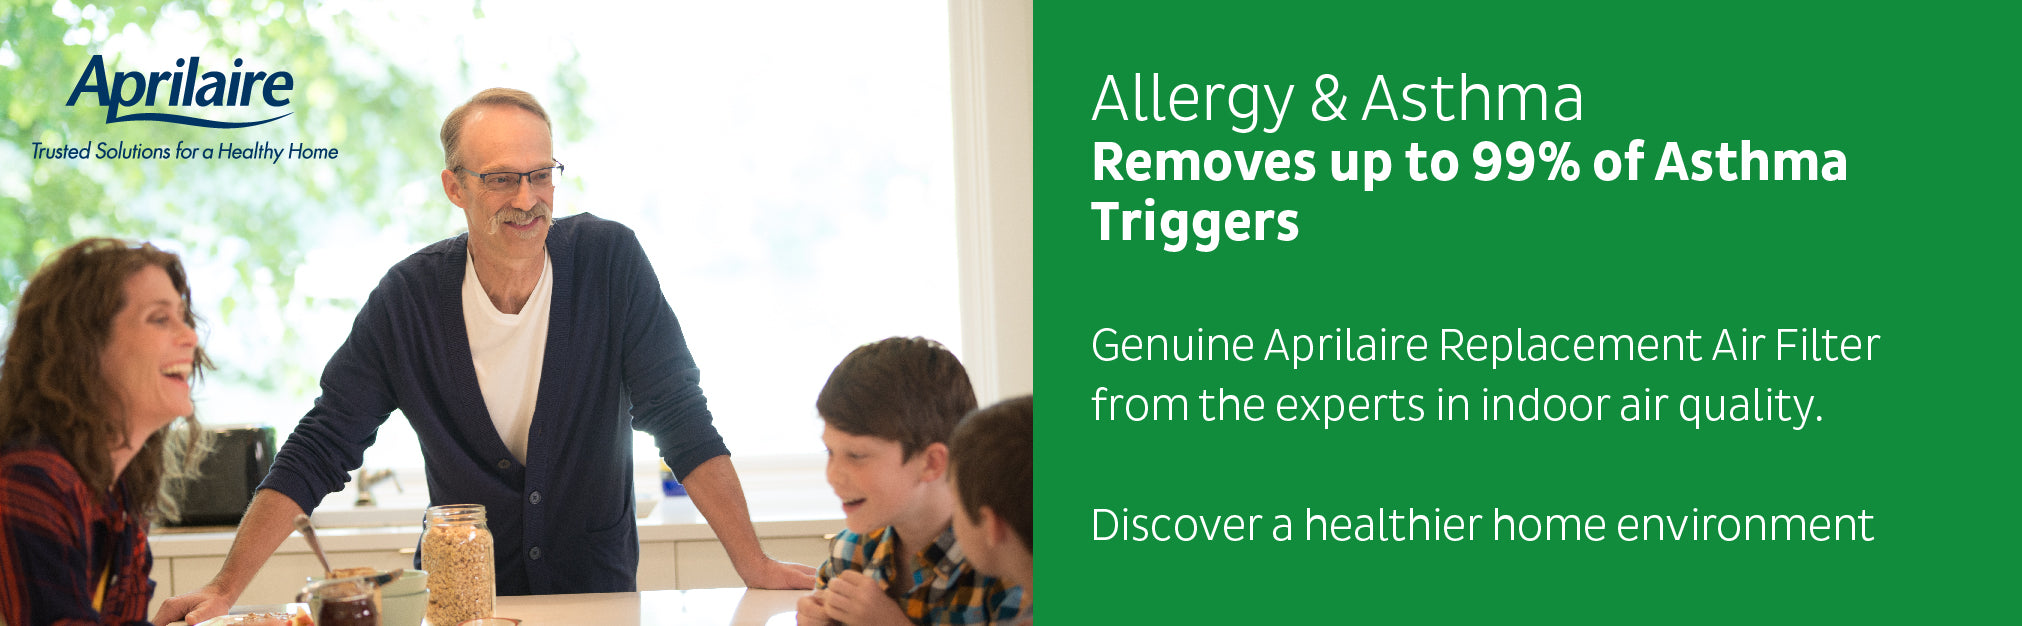 Family not suffering from allergies